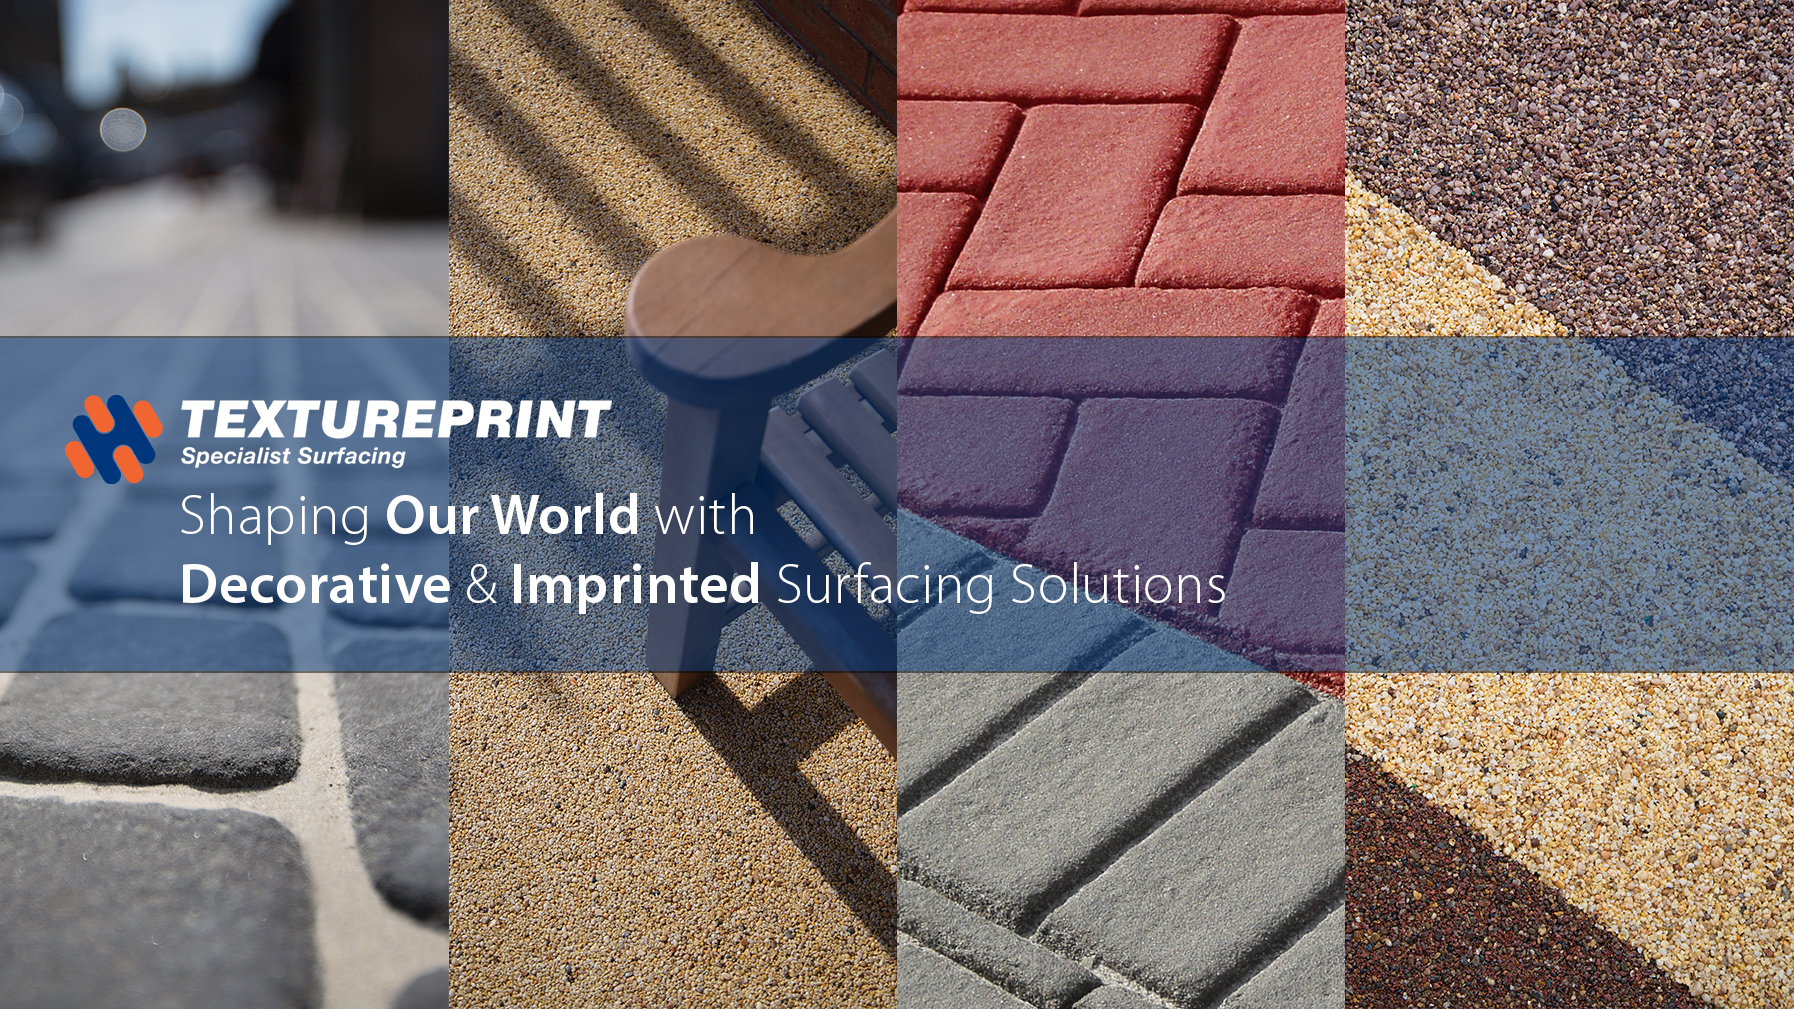 Textureprint: Specialist Imprinted & Decorative Surfacing